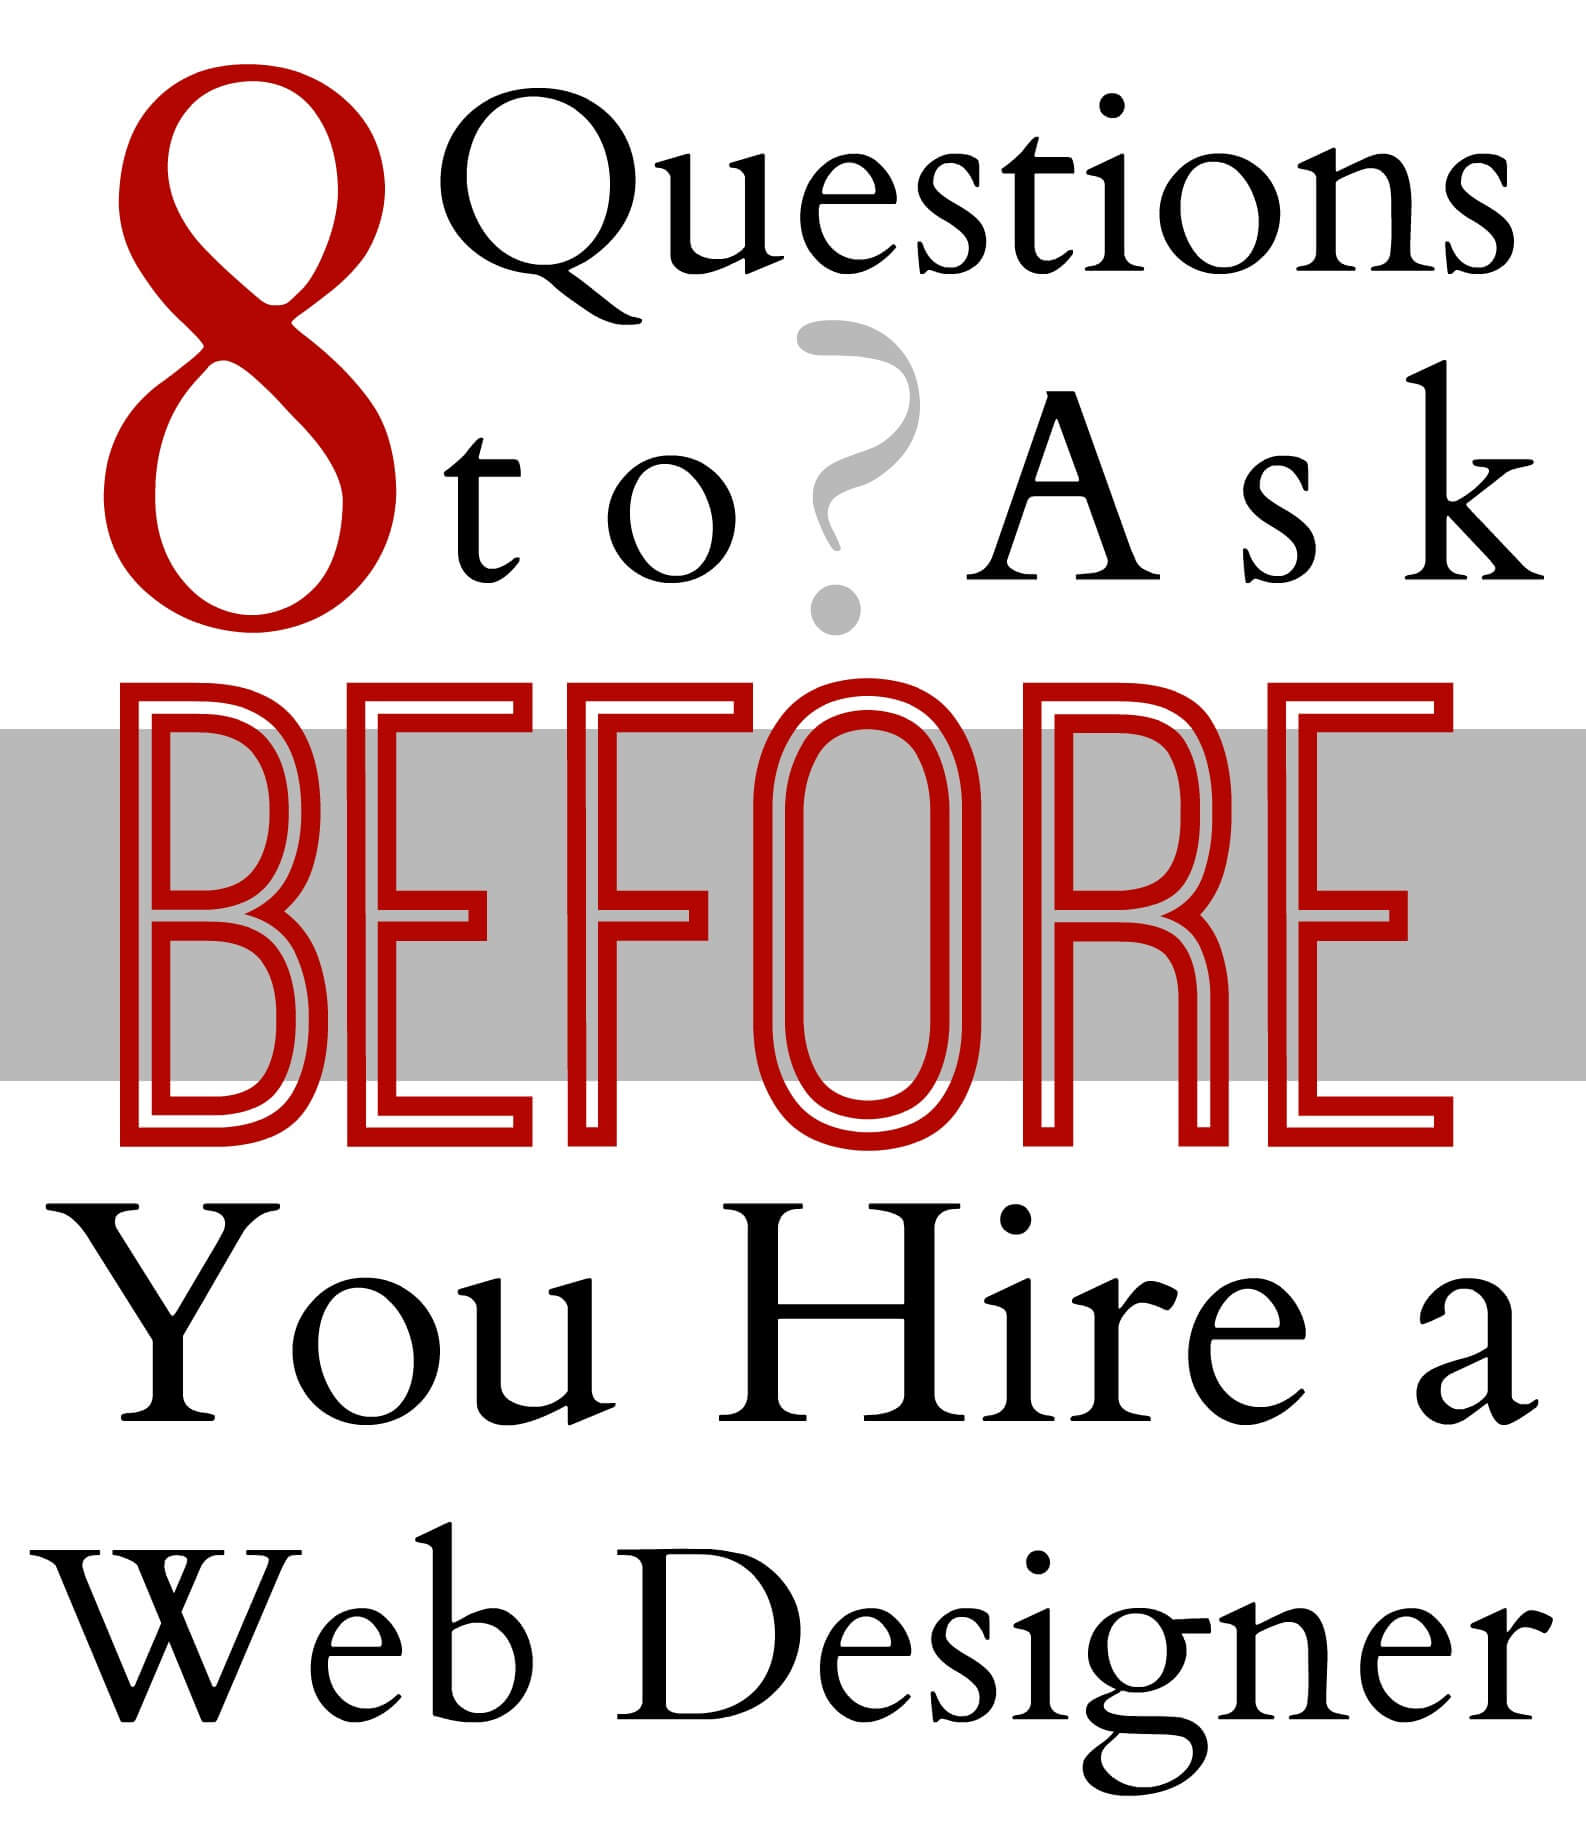 8 Questions to Ask Before You Hire a Web Designer